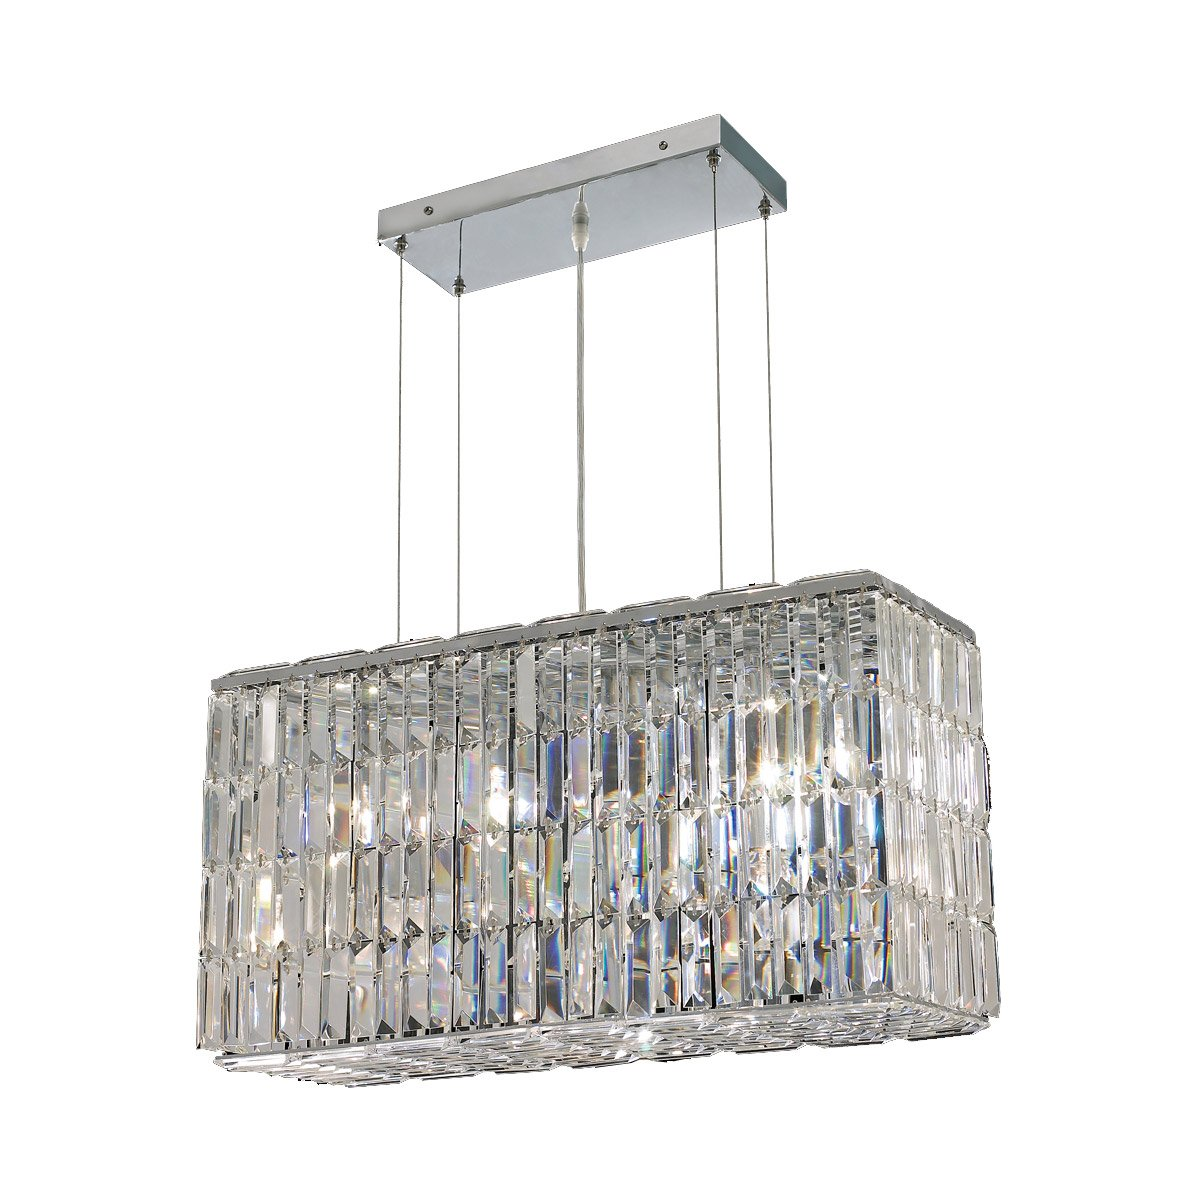 Maxime 26 Crystal Chandelier With 8 Lights - Chrome Finish And Clear / Spectra Swarovski Crystal Chandelier